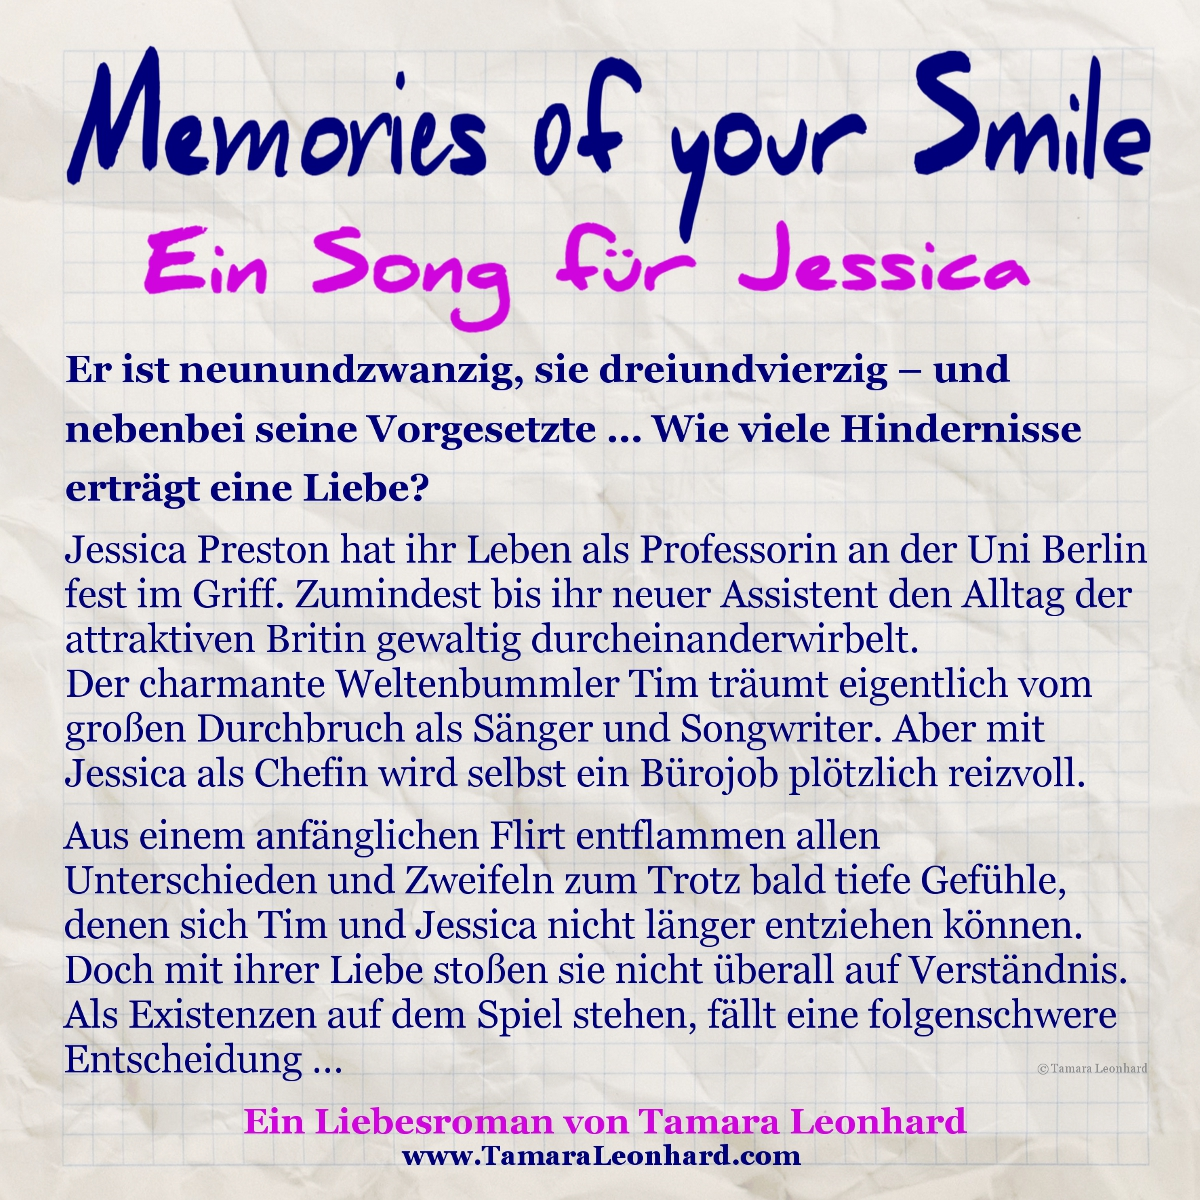 Memories of your Smile - Tamara Leonhard - Klappentext